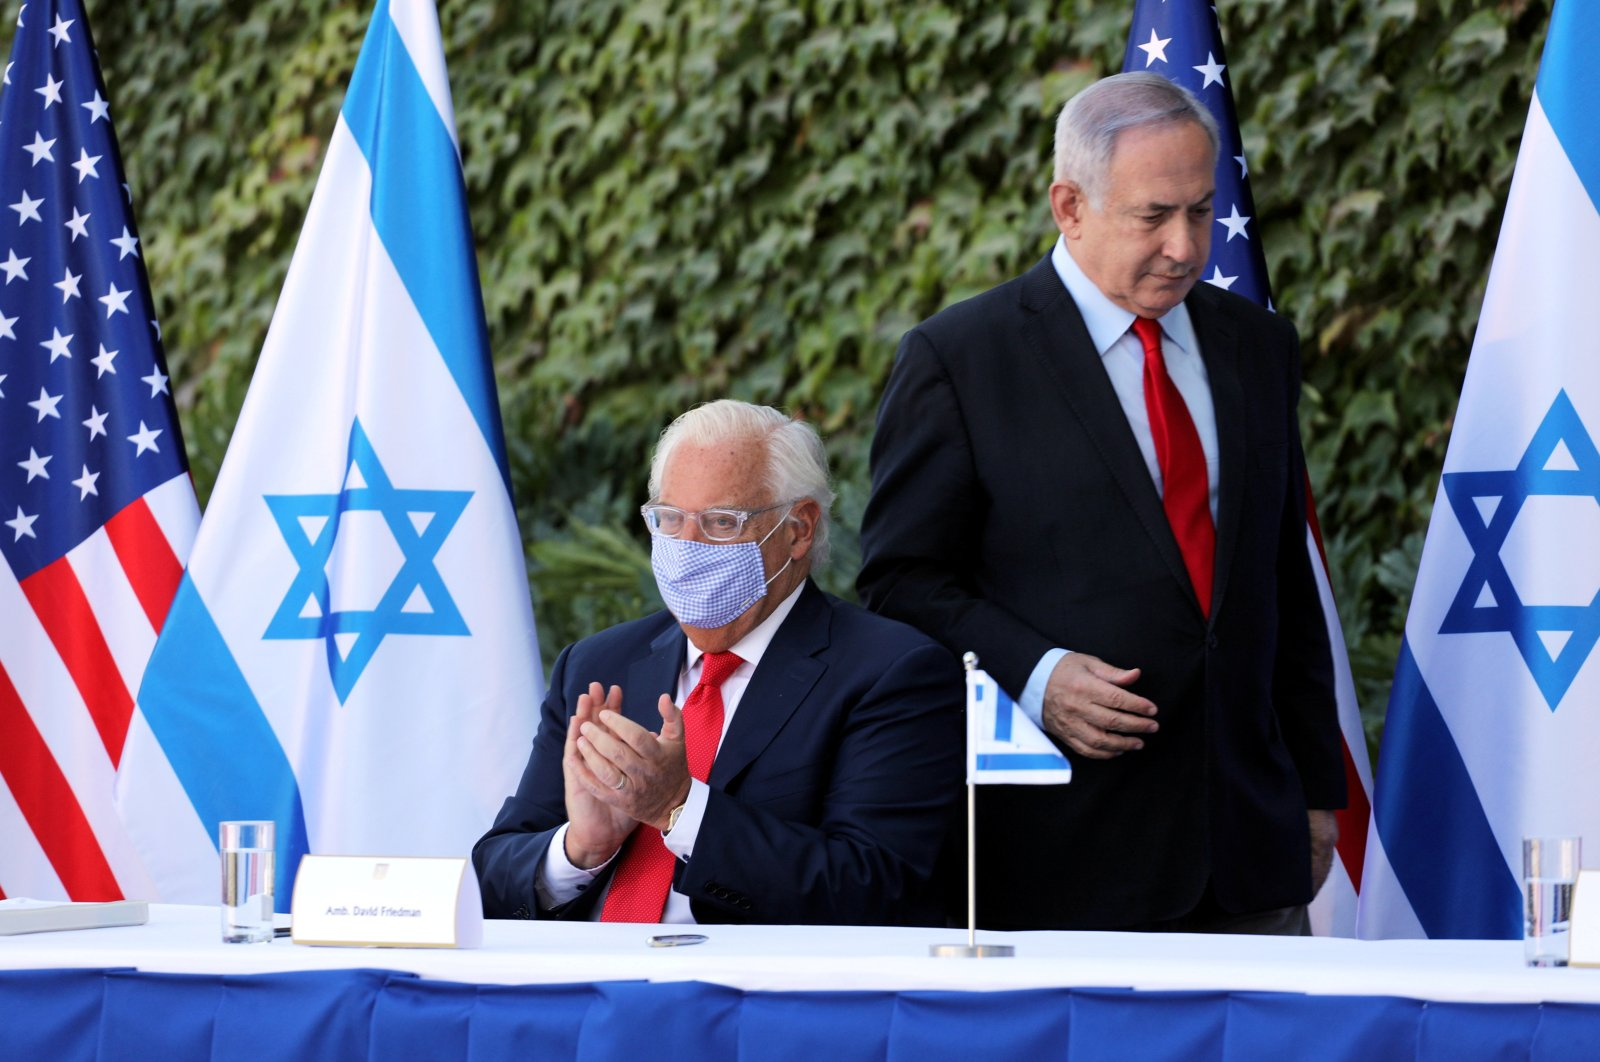 Israeli Prime Minister Benjamin Netanyahu and the U.S. Ambassador to Israel David Friedman attend a special ceremony to sign an extension of the Israel-U.S. scientific cooperation agreement at Ariel University in the Jewish settlement of Ariel, in the Israeli-occupied West Bank, Oct. 28, 2020. (Reuters Photo)